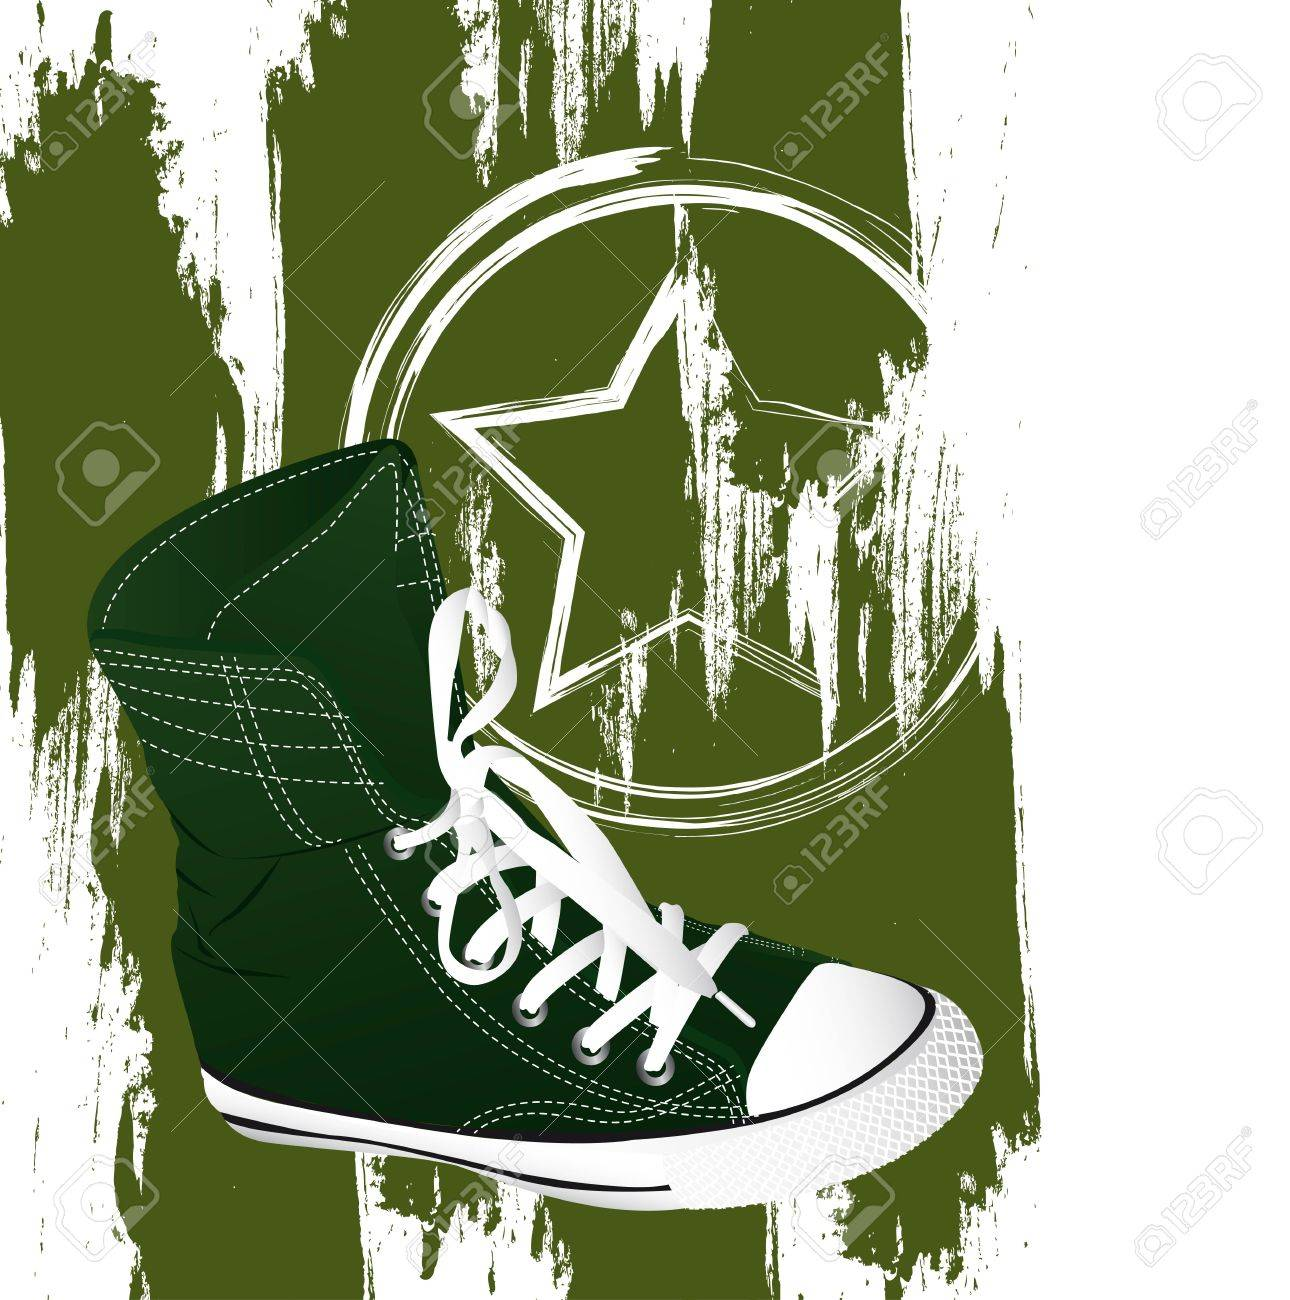 grunge military sneakers over white background. Stock Vector - 13440636